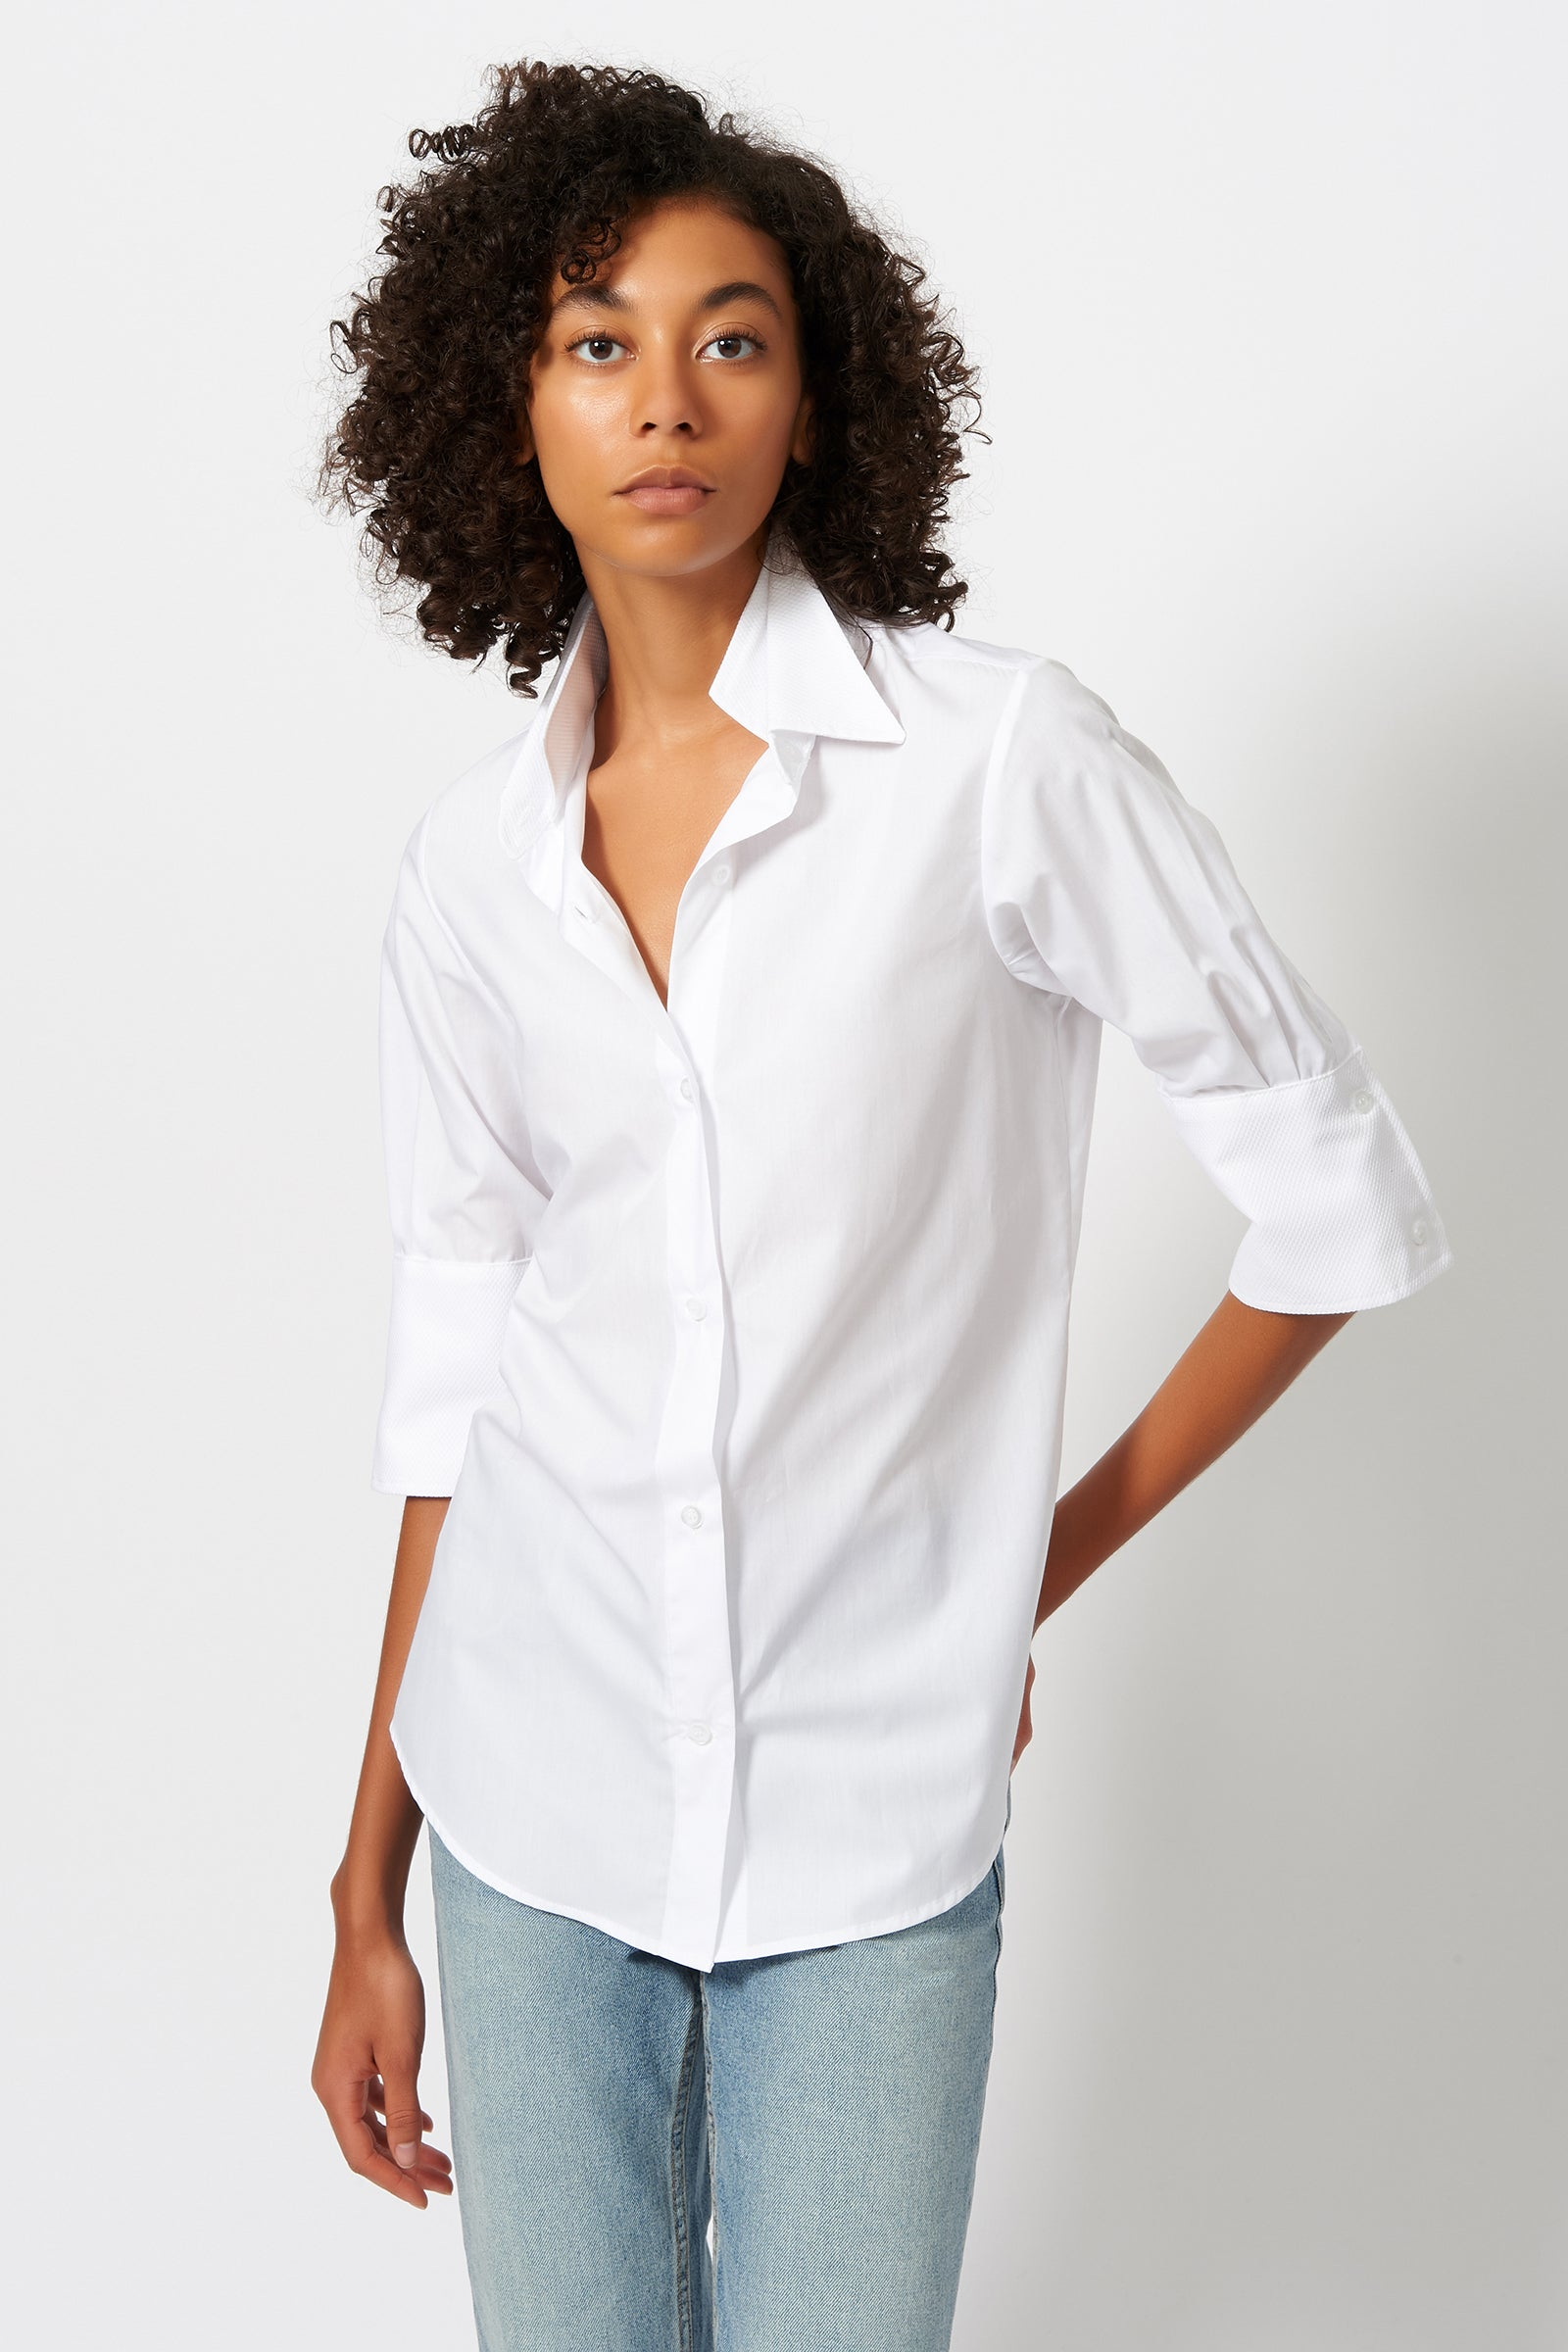 Kal Rieman Double Collar Shirt in White Poplin with Pique on Model Front View